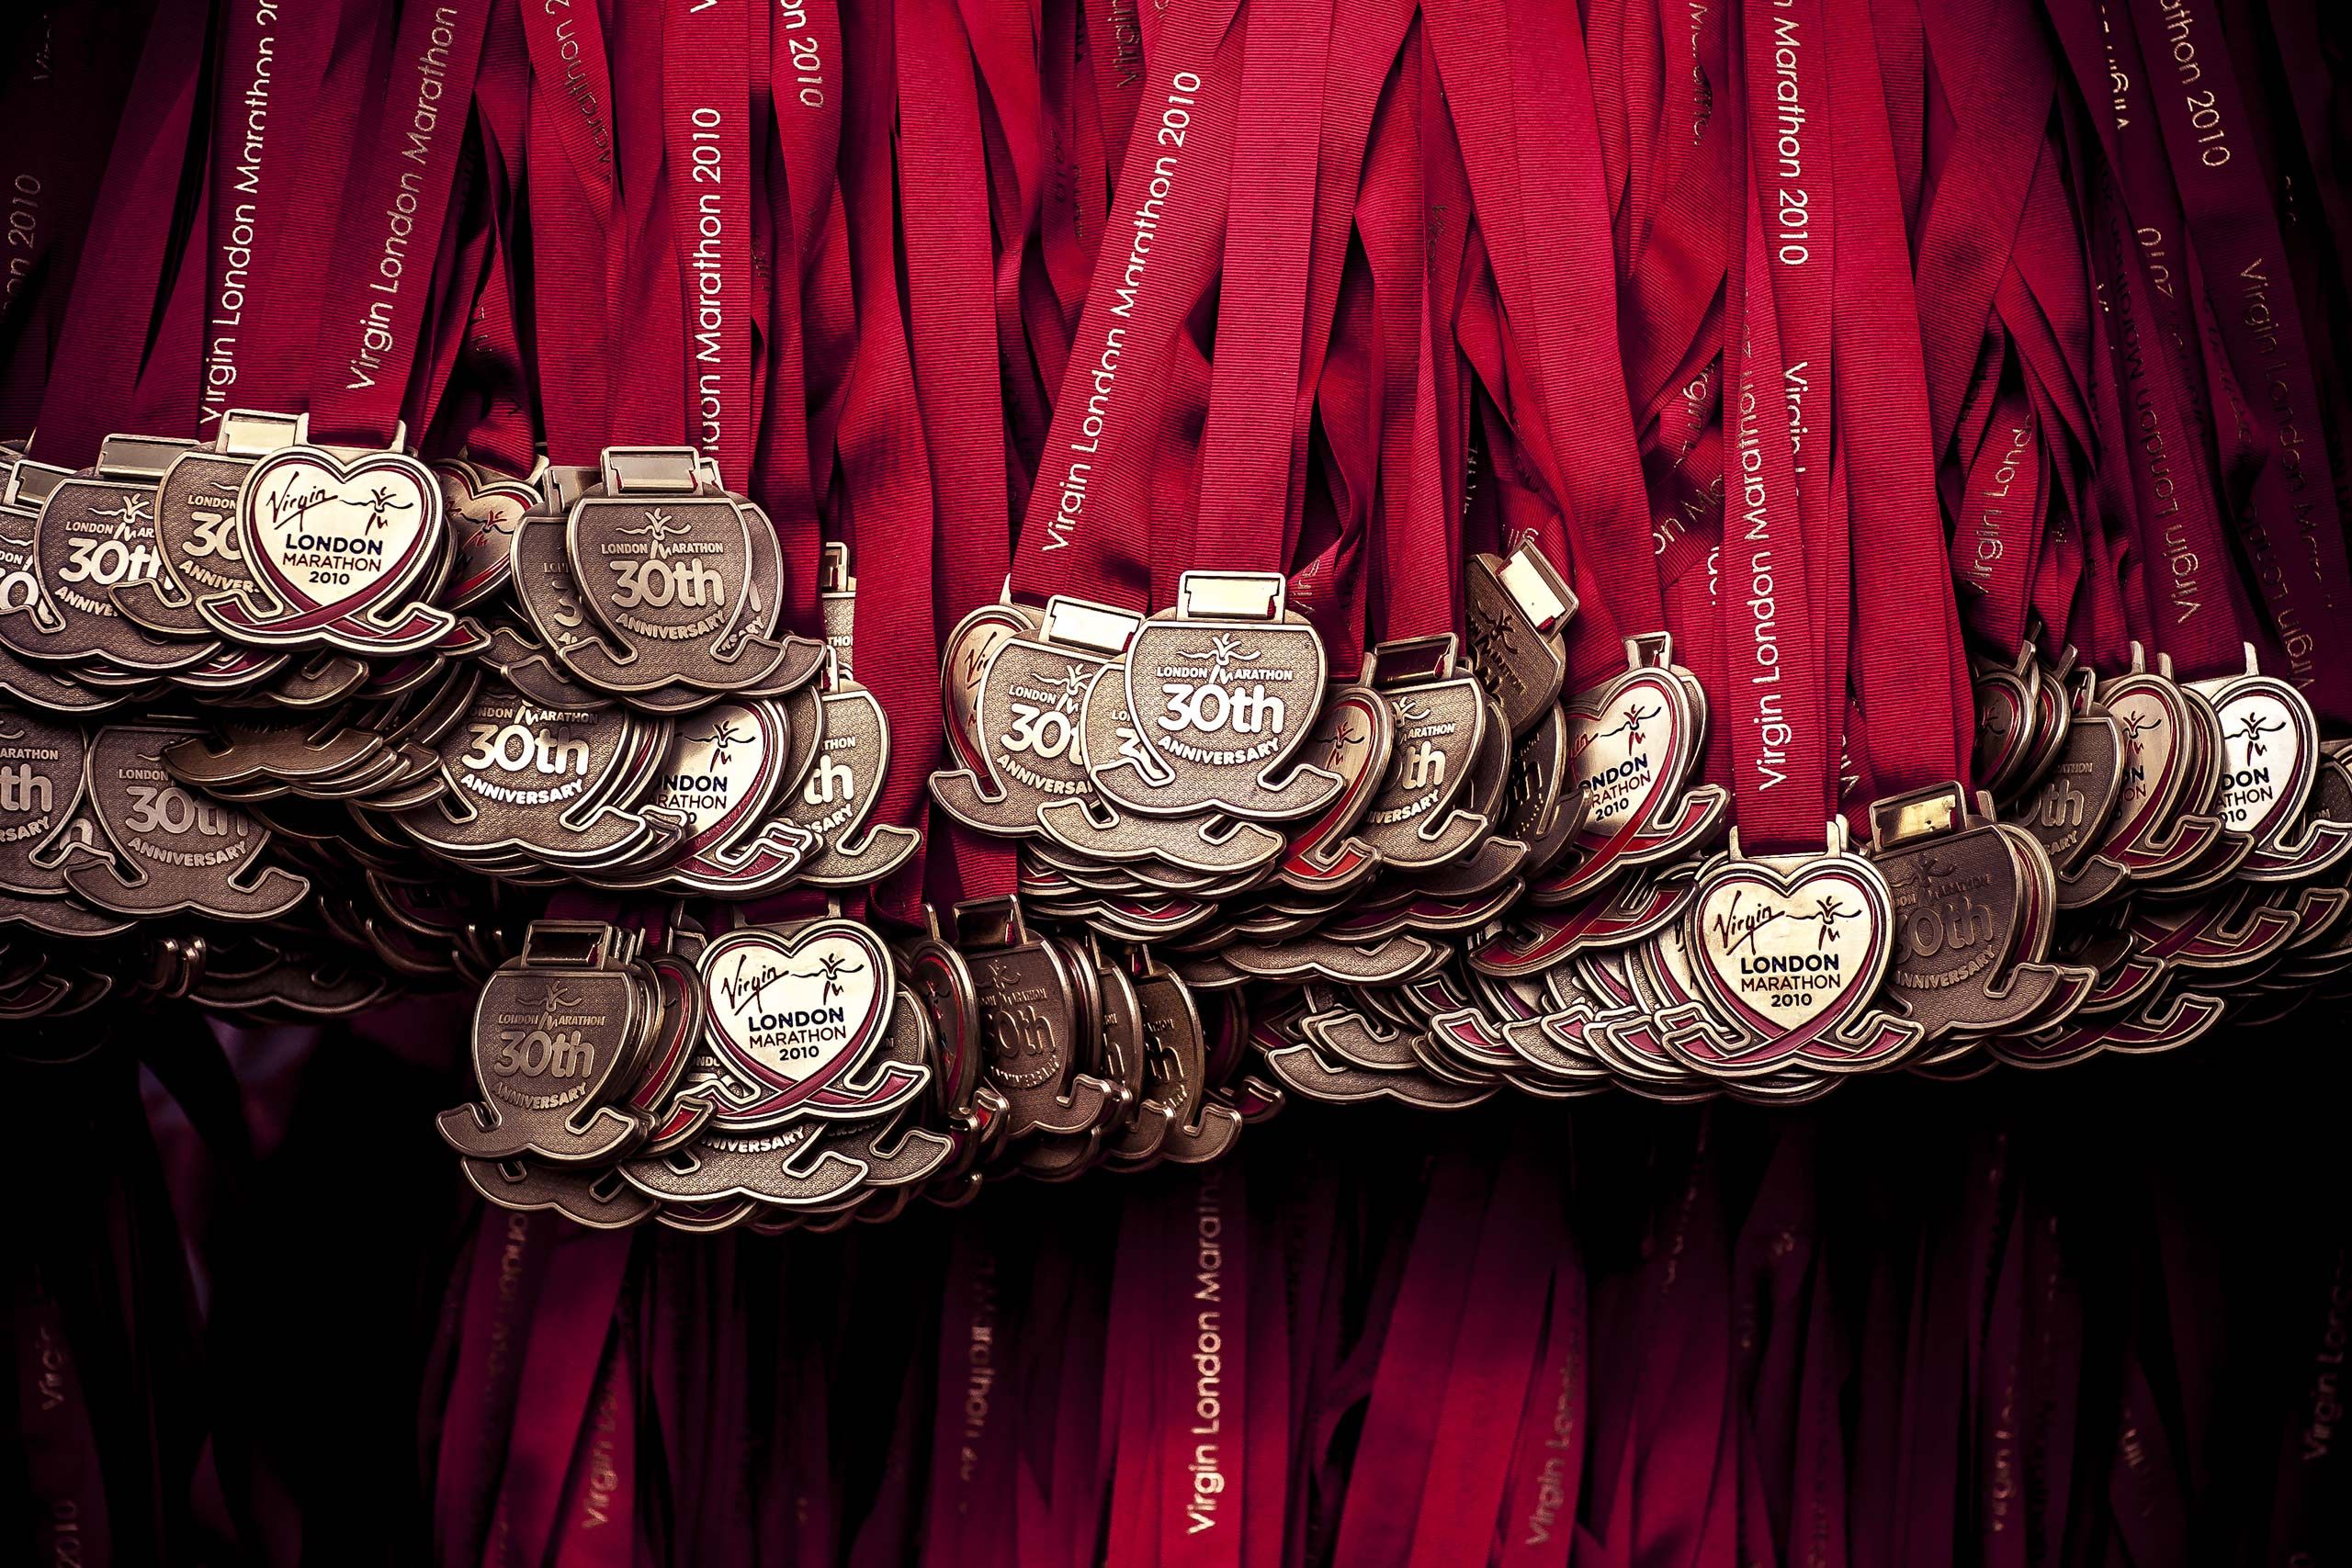 London_Marathon_Virgin_medals.jpg